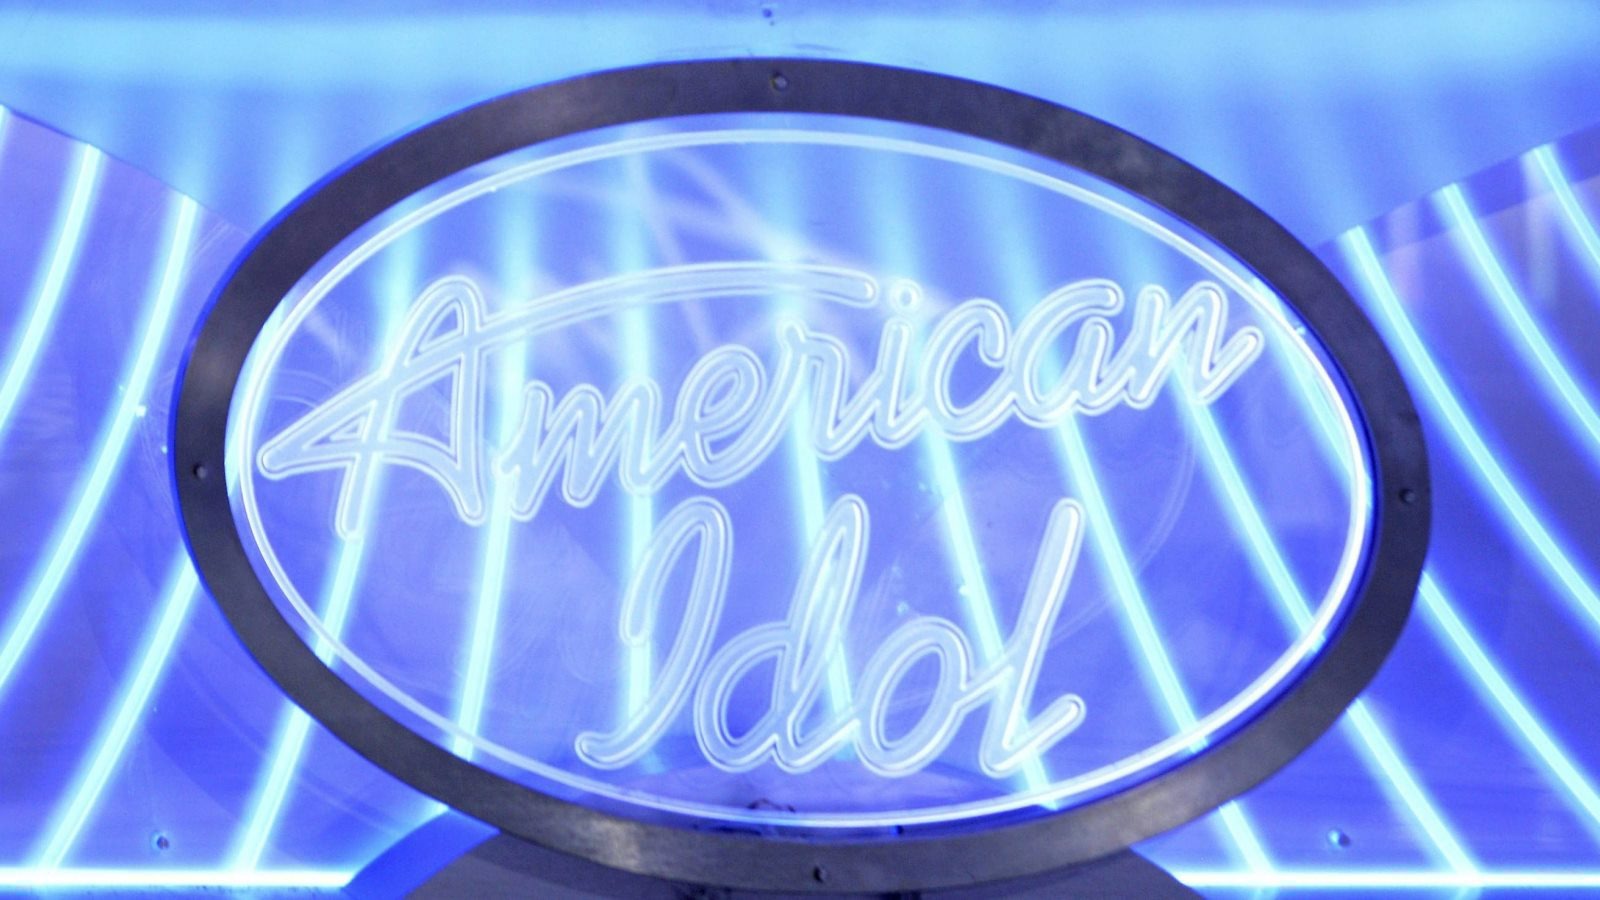 'American Idol' will be canceled after one more go-round, the show's parent network Fox announced Monday. (Michael Becker/FOX)